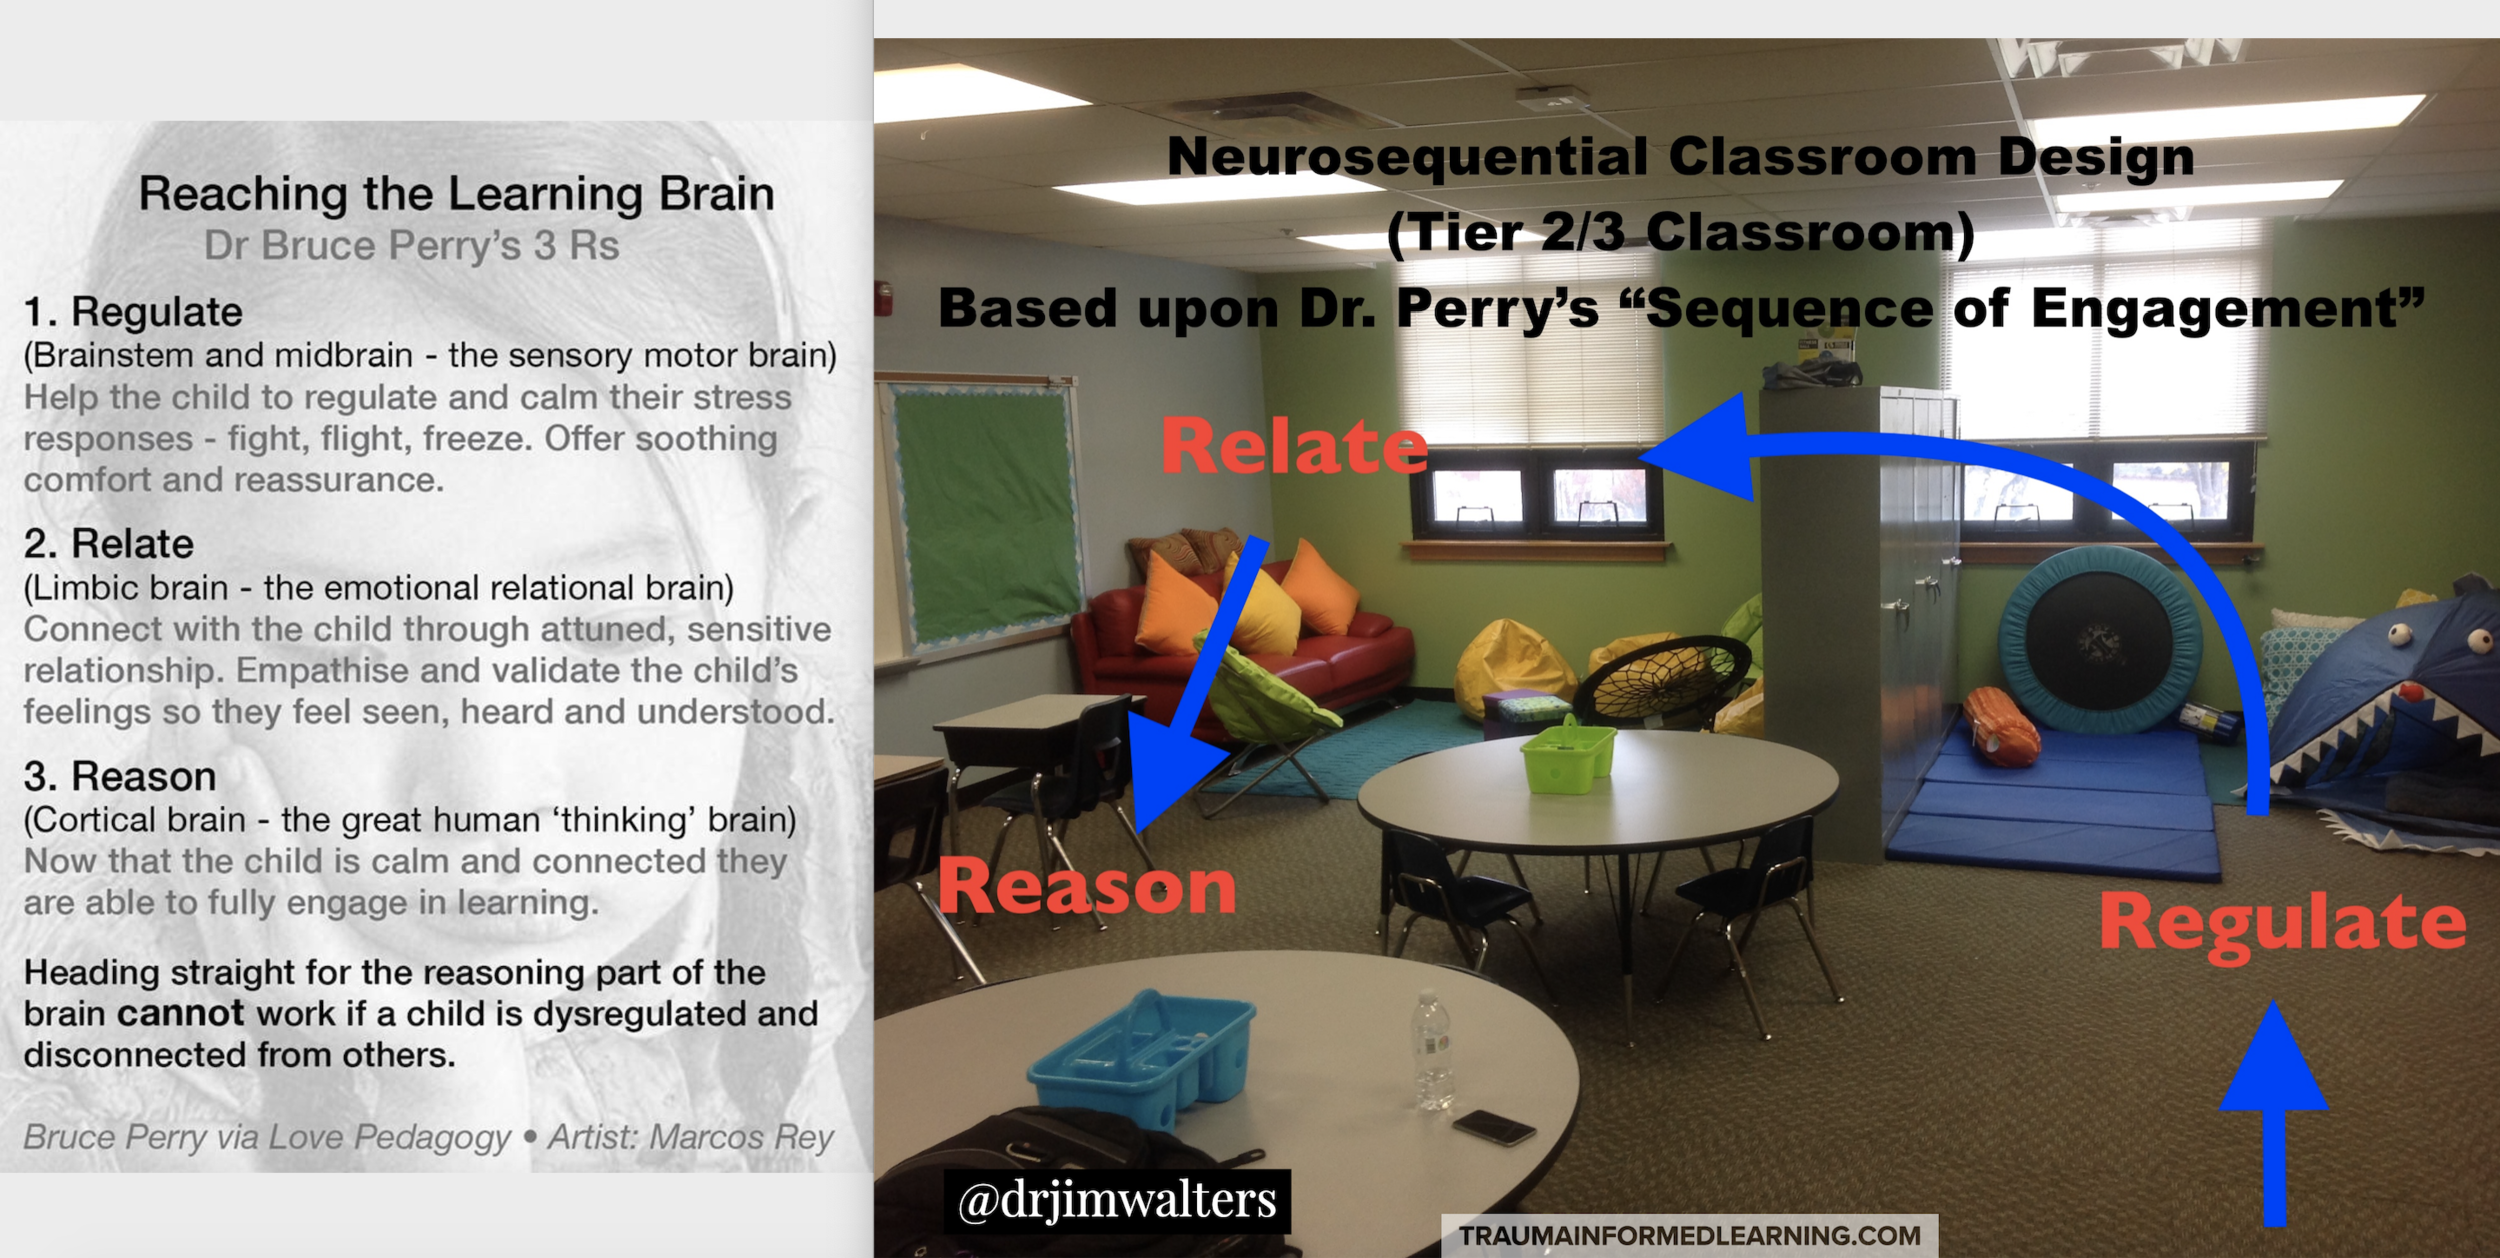 I use these spaces as a foundation to help all teachers visualize the possibilities of what it may look like within their own learning spaces. Remembering all Behaviors=Communications; the goal if you have runners or those students eloping, etc. is to better meet their emotional needs within your classroom. I'm not saying this will solve all of your problems, but just like some adults who need that cup of coffee before engaging with others, we need to provide safe spaces for our students to be able to prime and scaffold their own learning at their own speed.  My 30,000ft view: Pause and approach your observations of student behaviors with Curiosity. It generally has nothing to do about you. When you get what is behind the behavior, you can begin to empower the student to become a positive change agent. We all have a need to be seen, heard, and valued. This approach doesn't take having a PhD behind your name; only a desire for building healthy relationships with your students. ~Jim